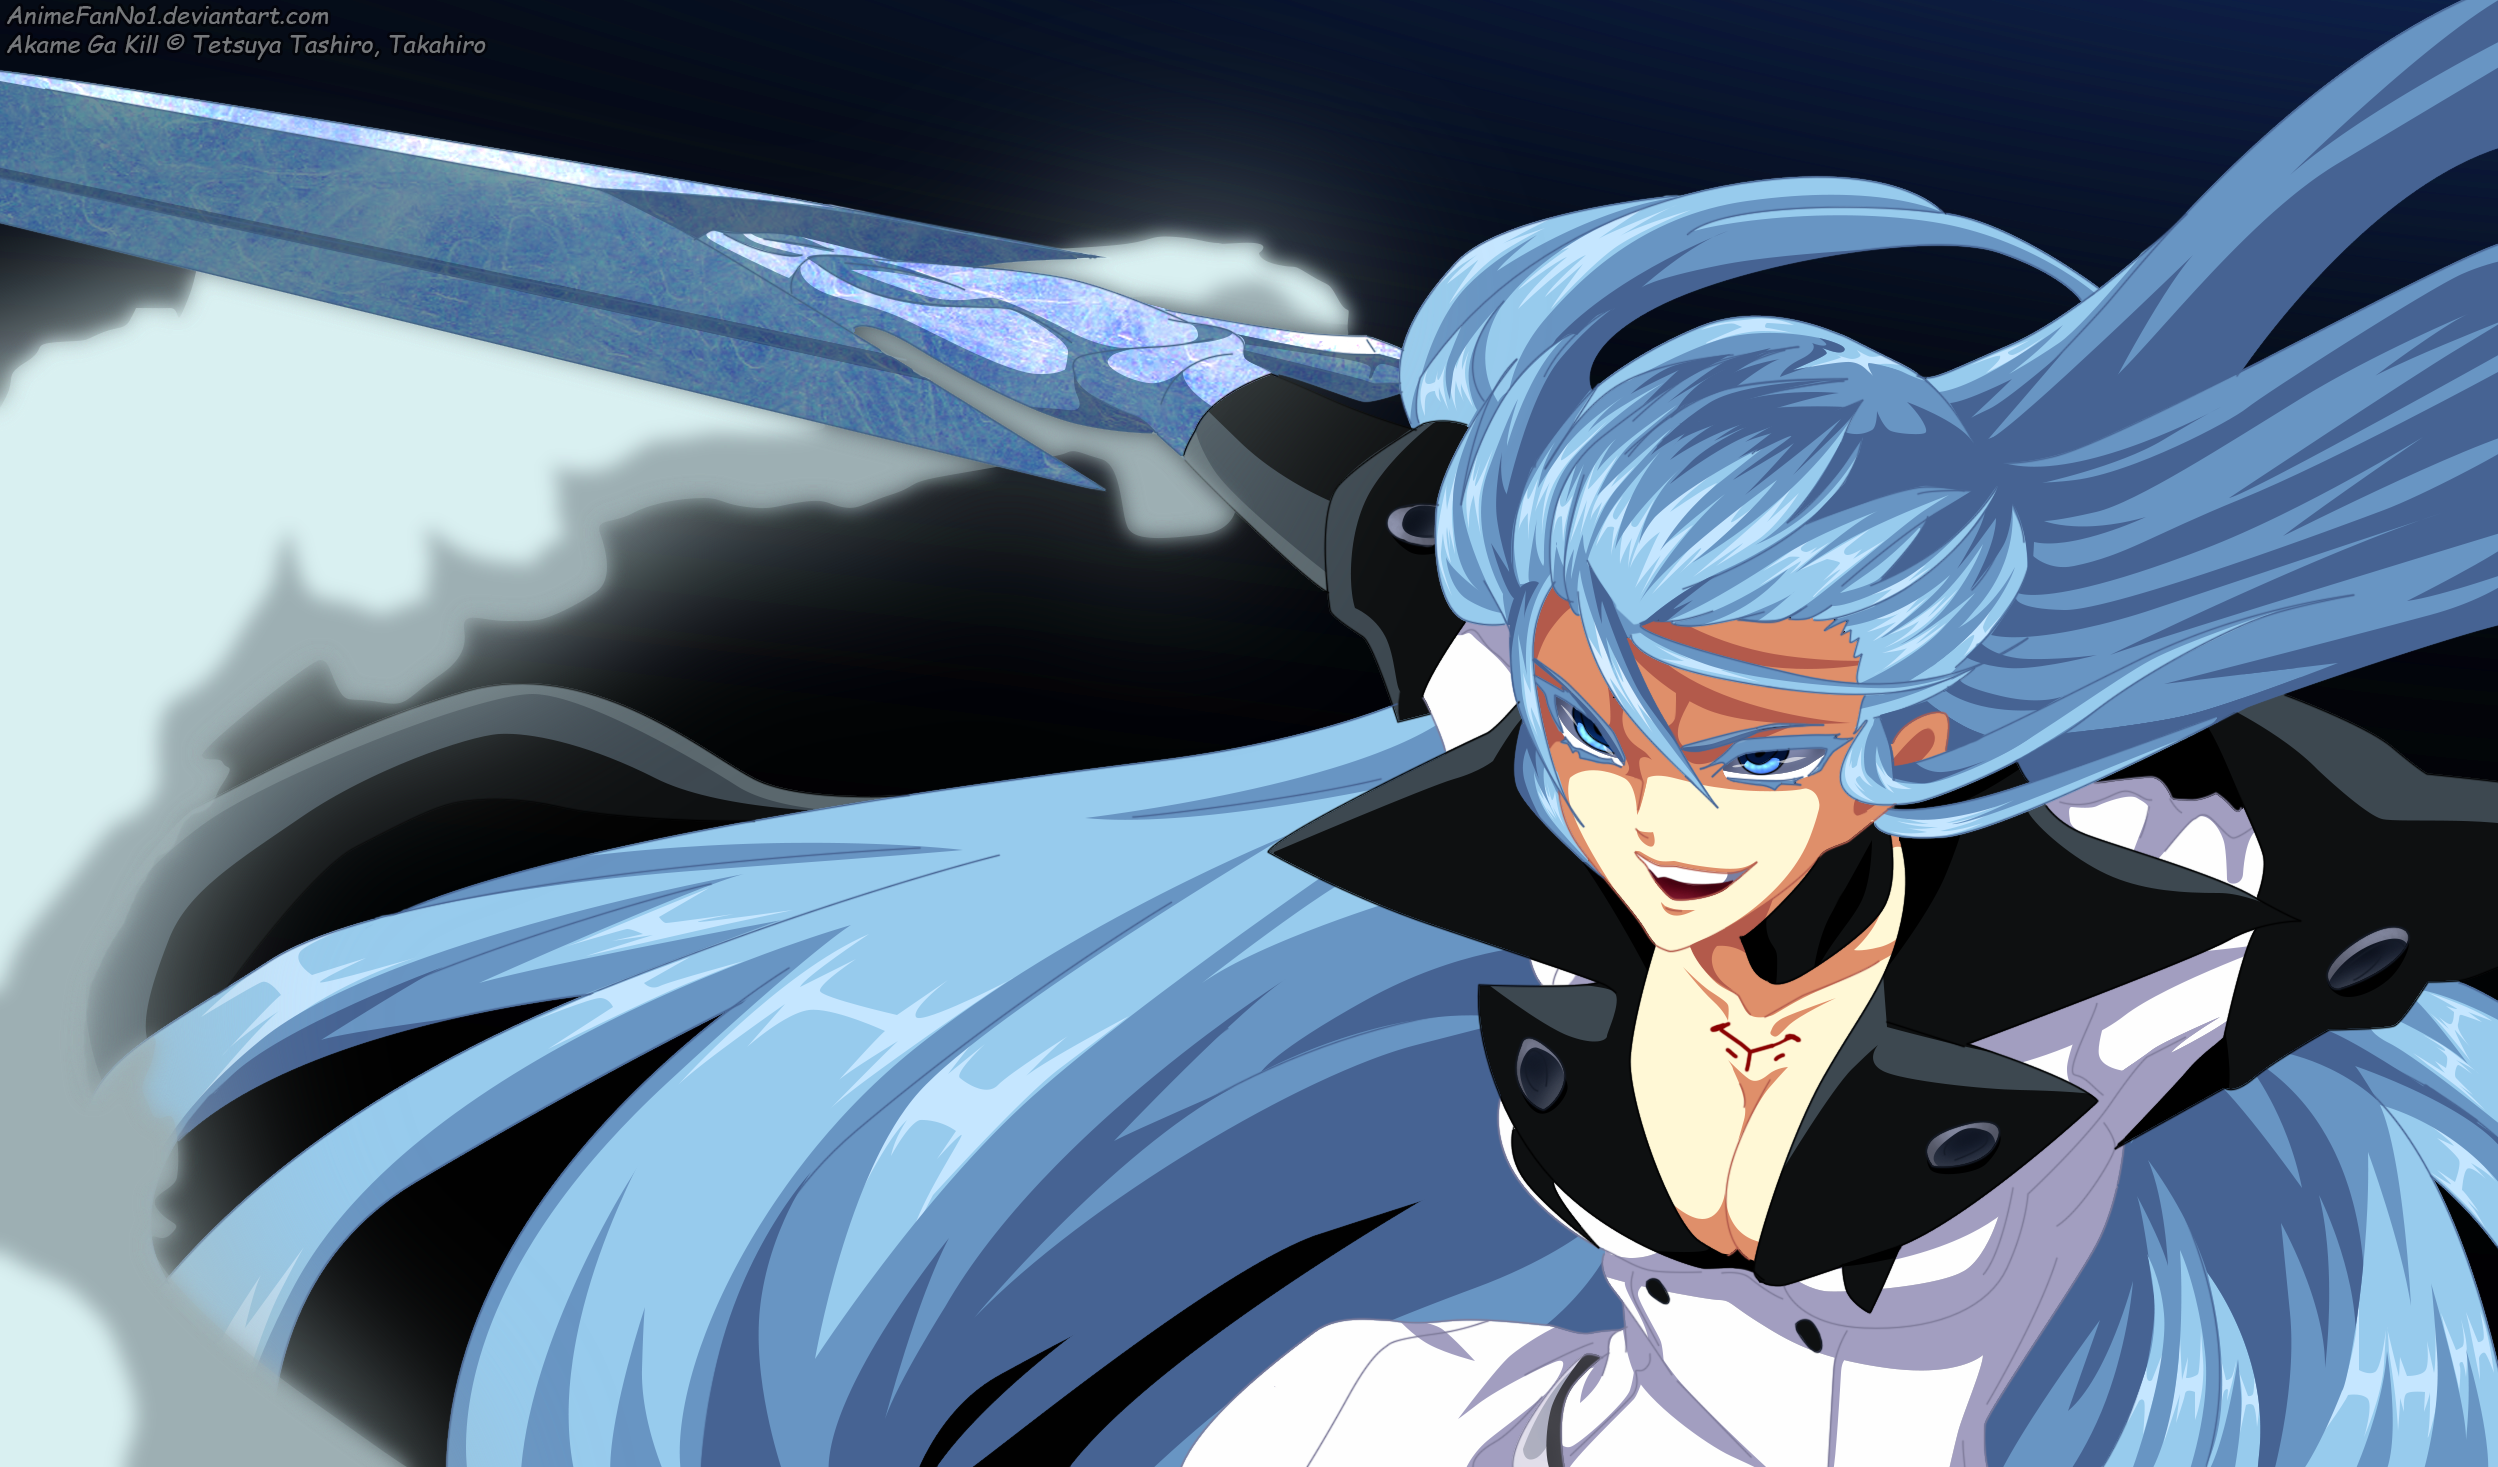 Esdeath Hd Wallpaper Background Image 2498x1467 Id 995435